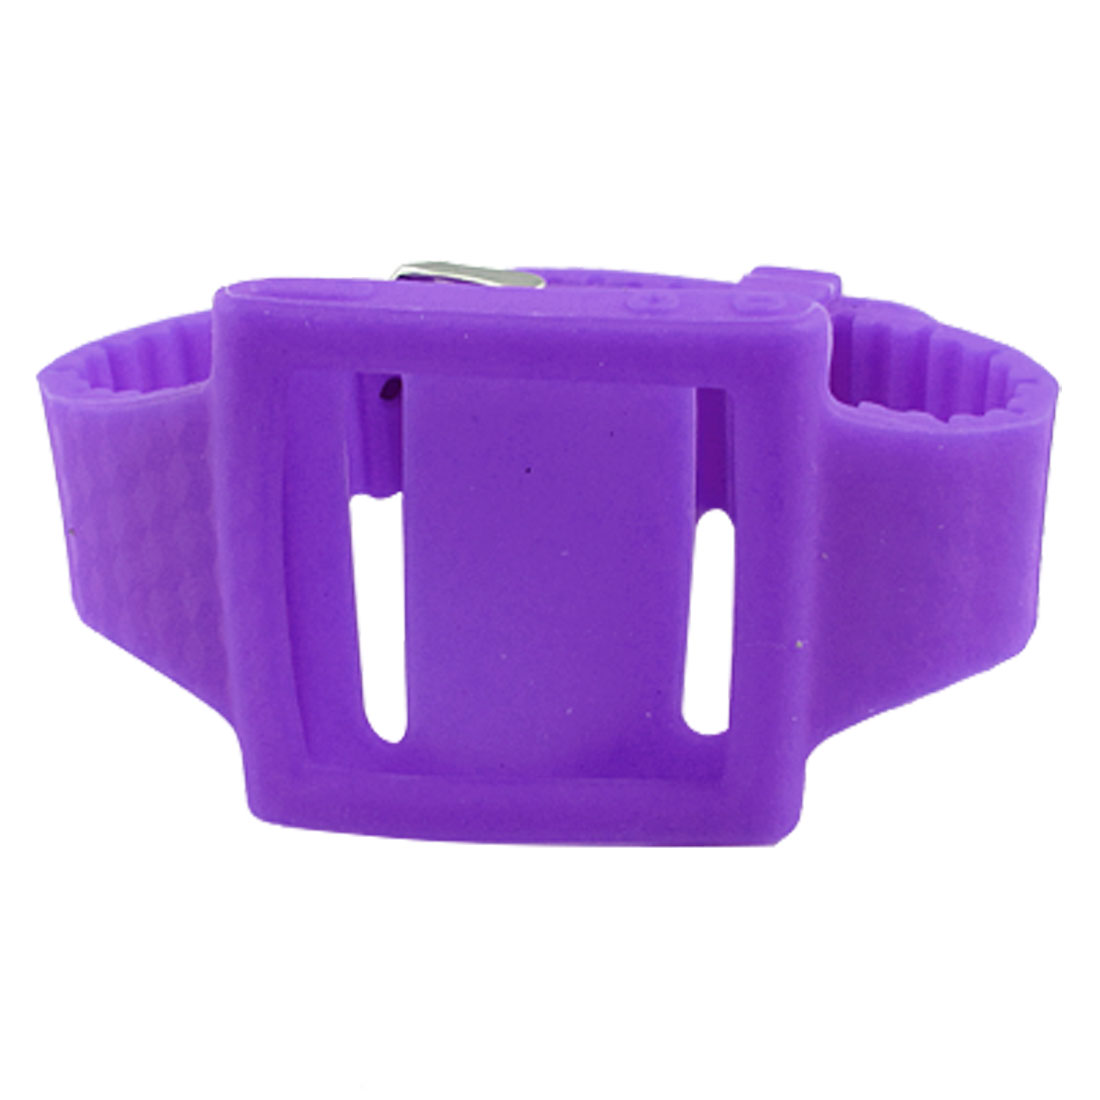 Lavender Silicone Wrist Band Strap Case for iPod Nano 6